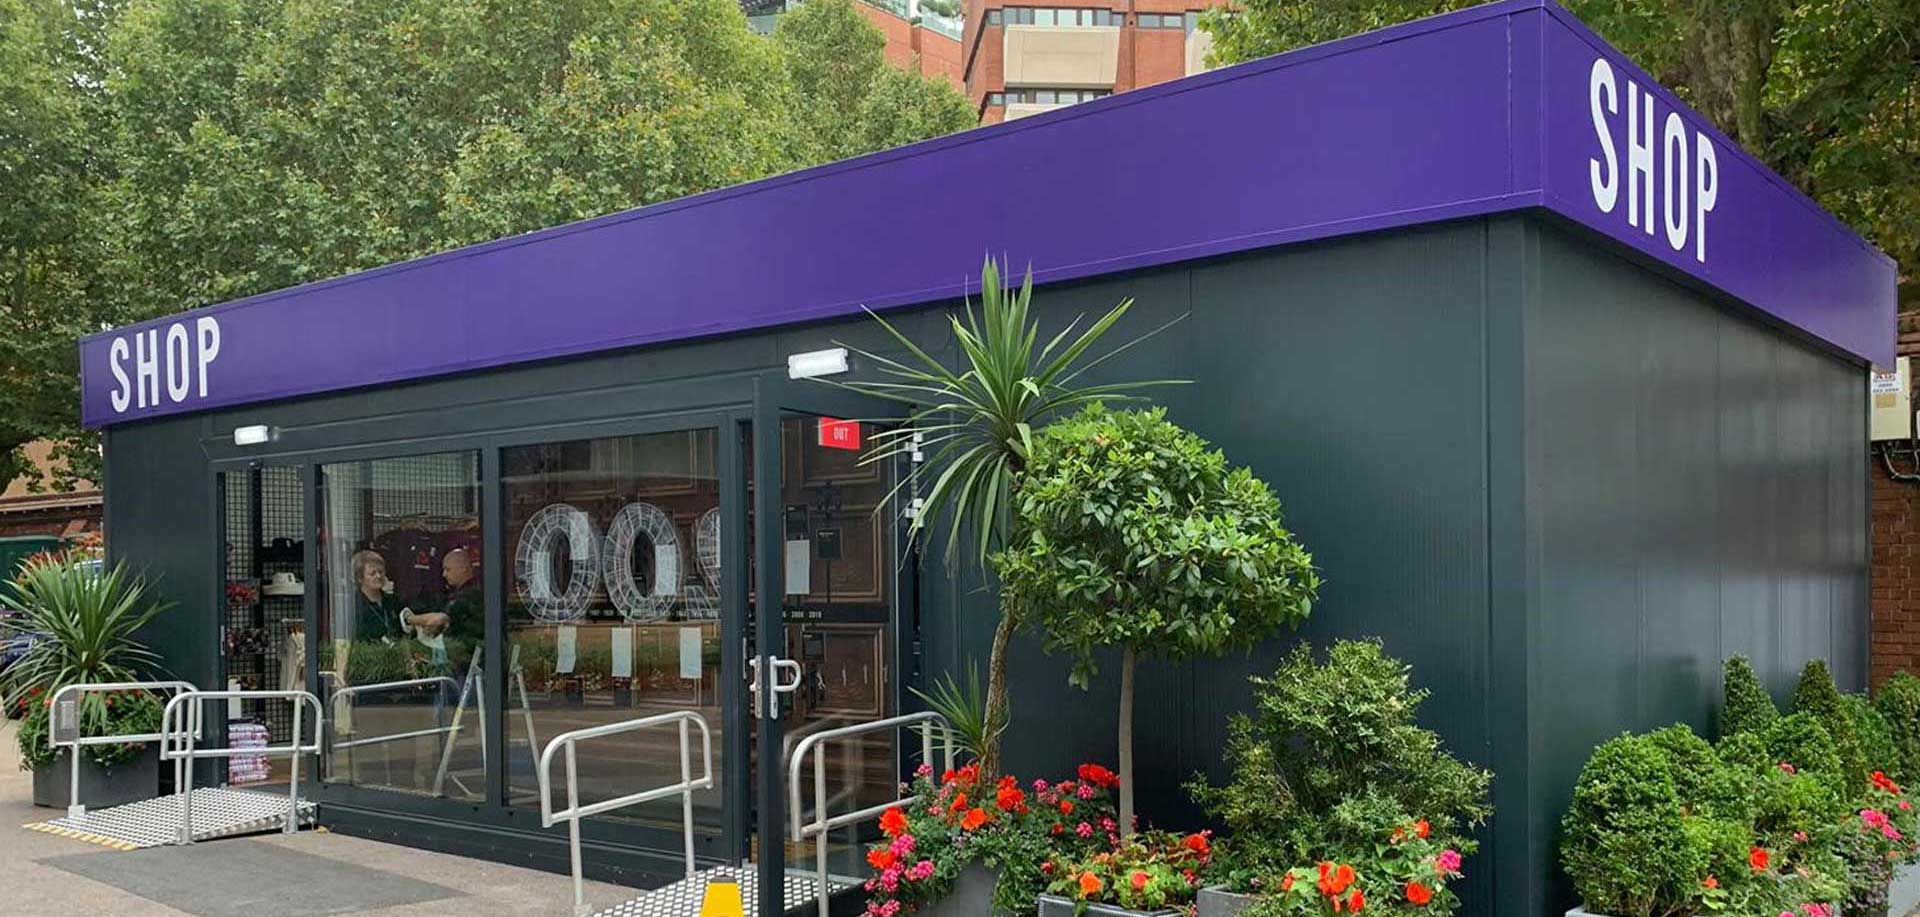 portable shop container conversion at Lords cricket ground